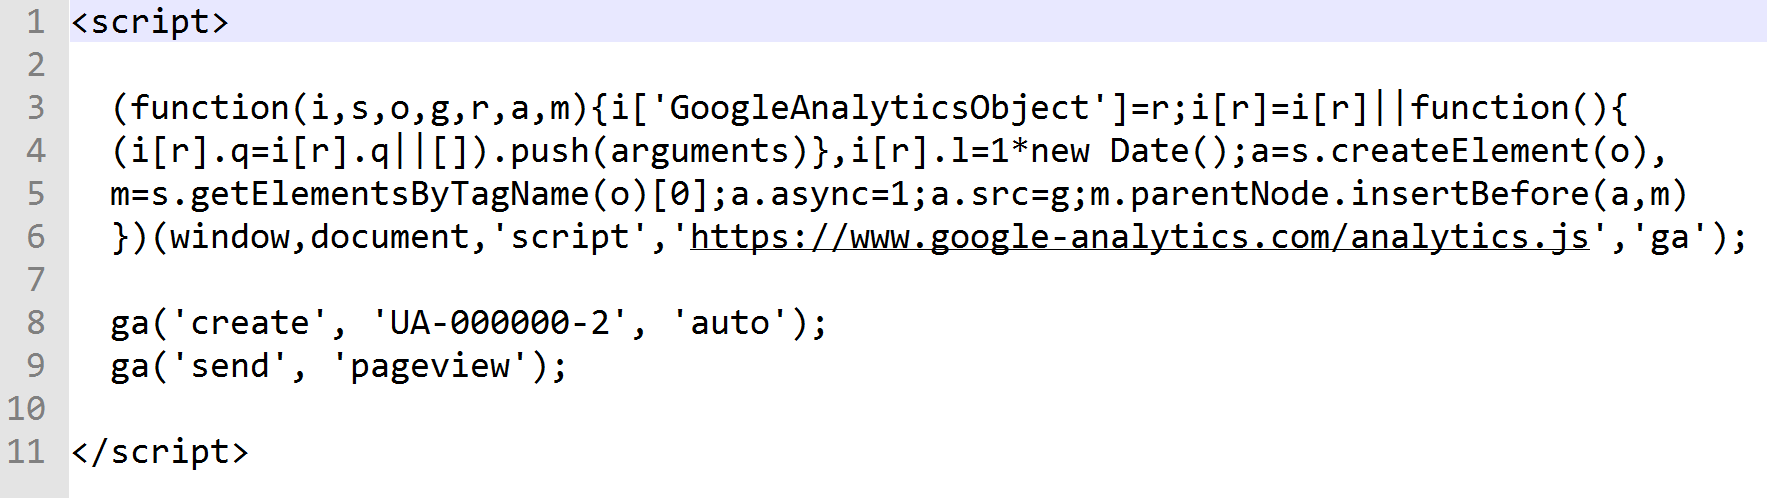 Screenshot of the Google Analytics code snippet in the converted web page